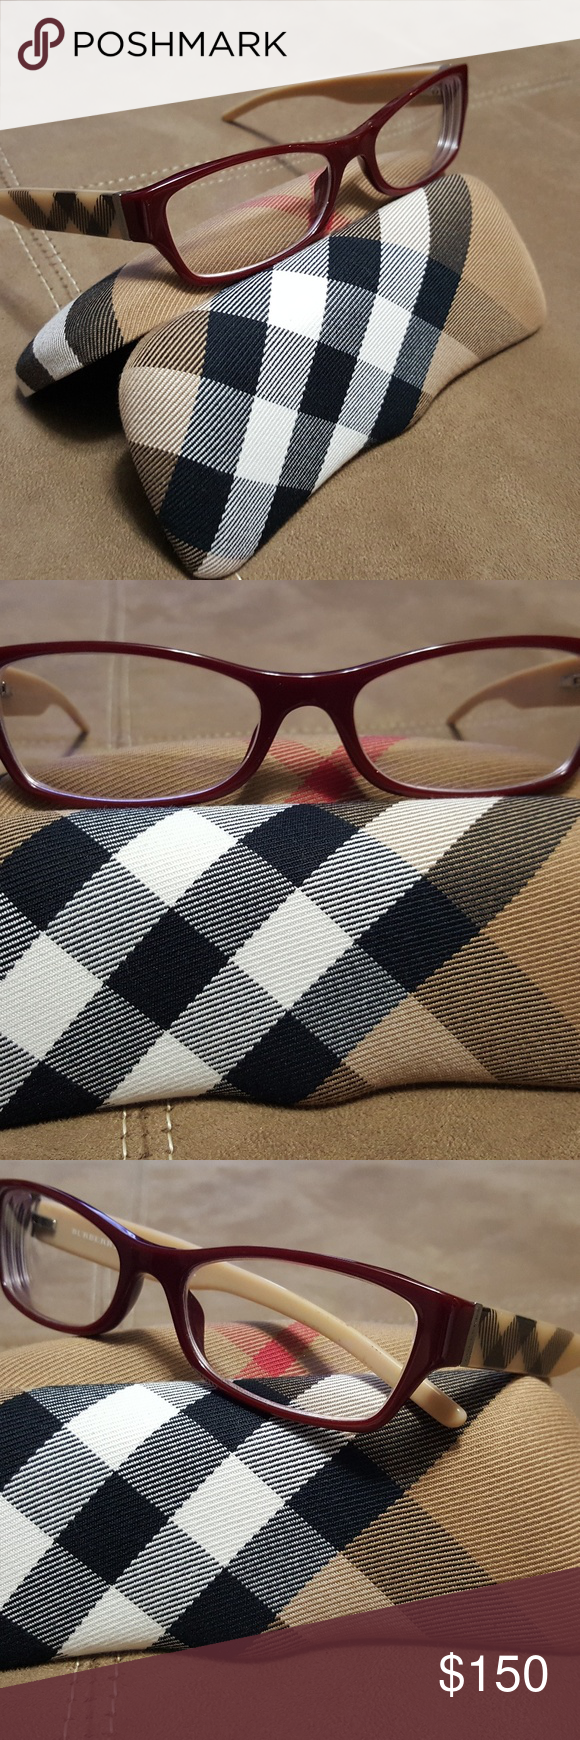 a8f716eecbd Burberry Eyeglasses Authentic Burberry 2094 Eyeglass frame. Still in really  good condition. Have barely